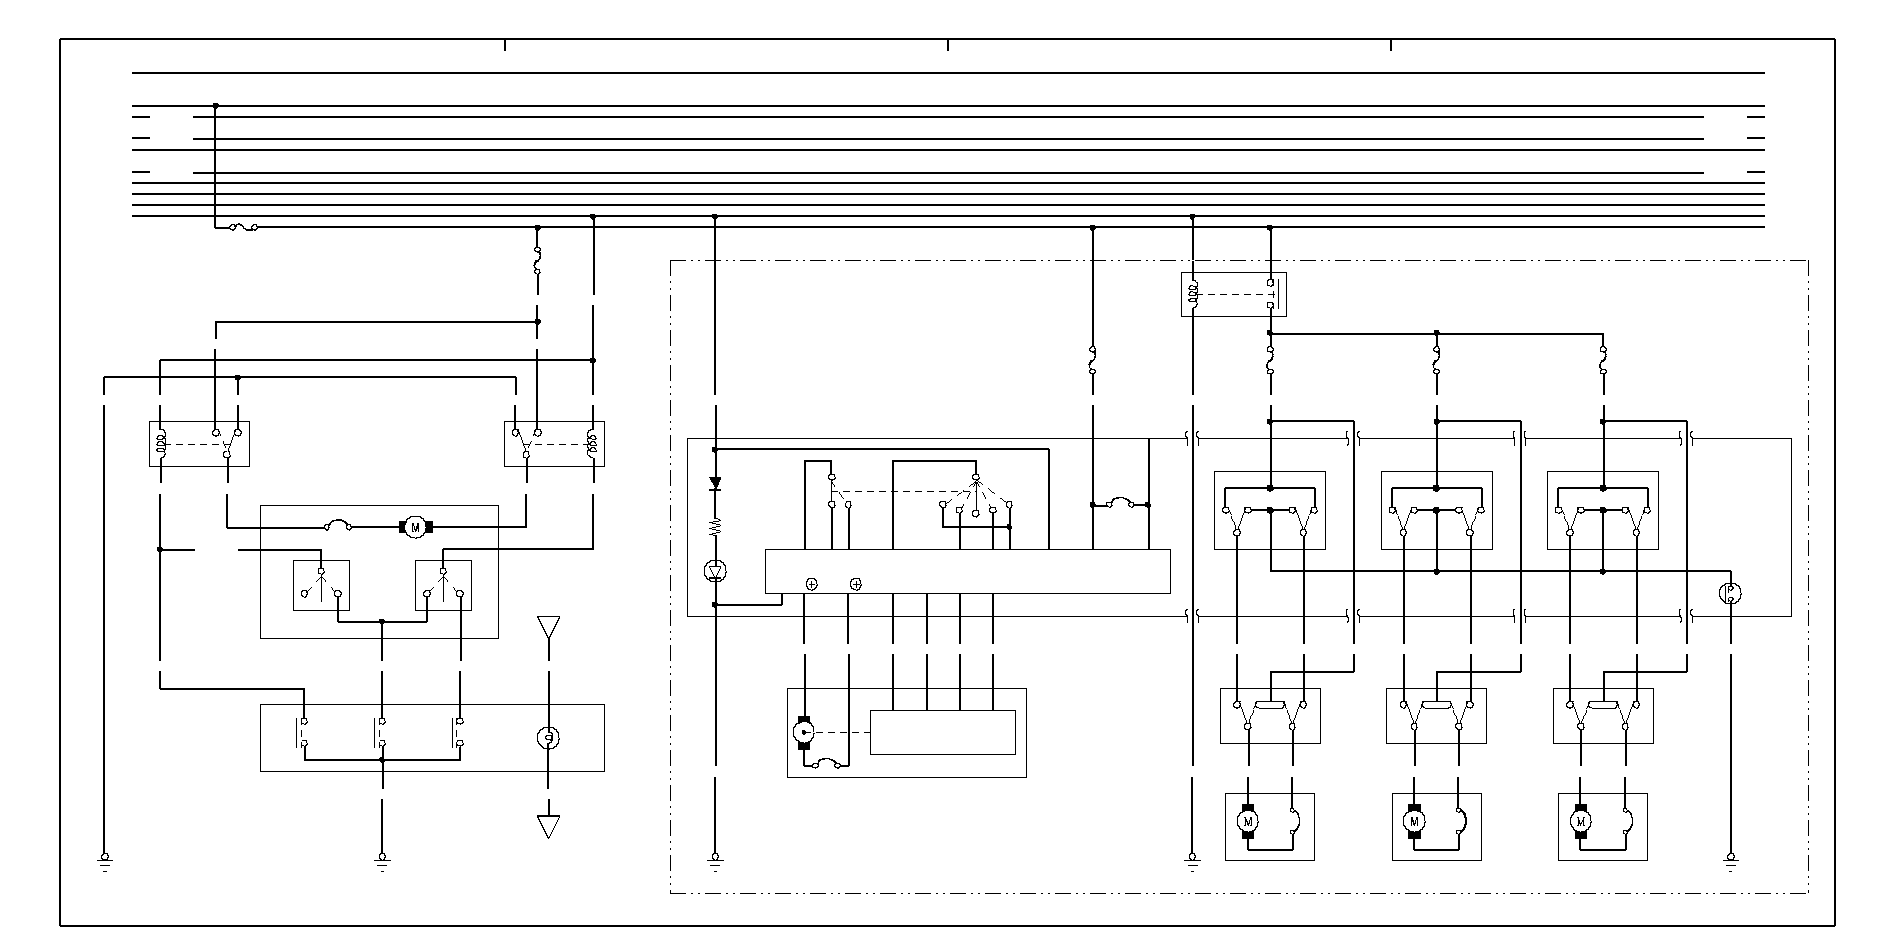 ... S9A2E00000000000000EBAD12 wiring diagram honda cr v 2002, 2003, 2004,  2005 service manual 1997